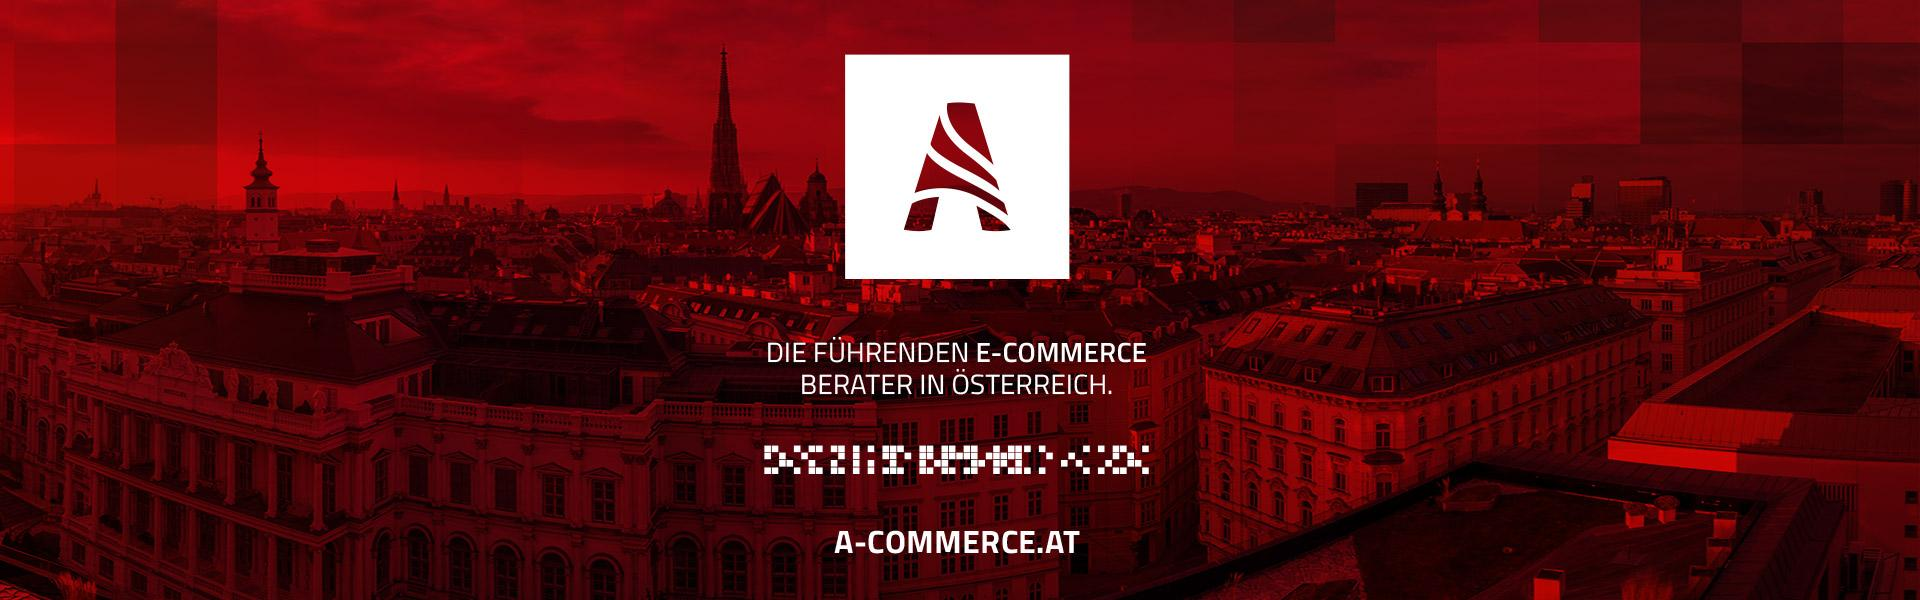 A-COMMERCE cover